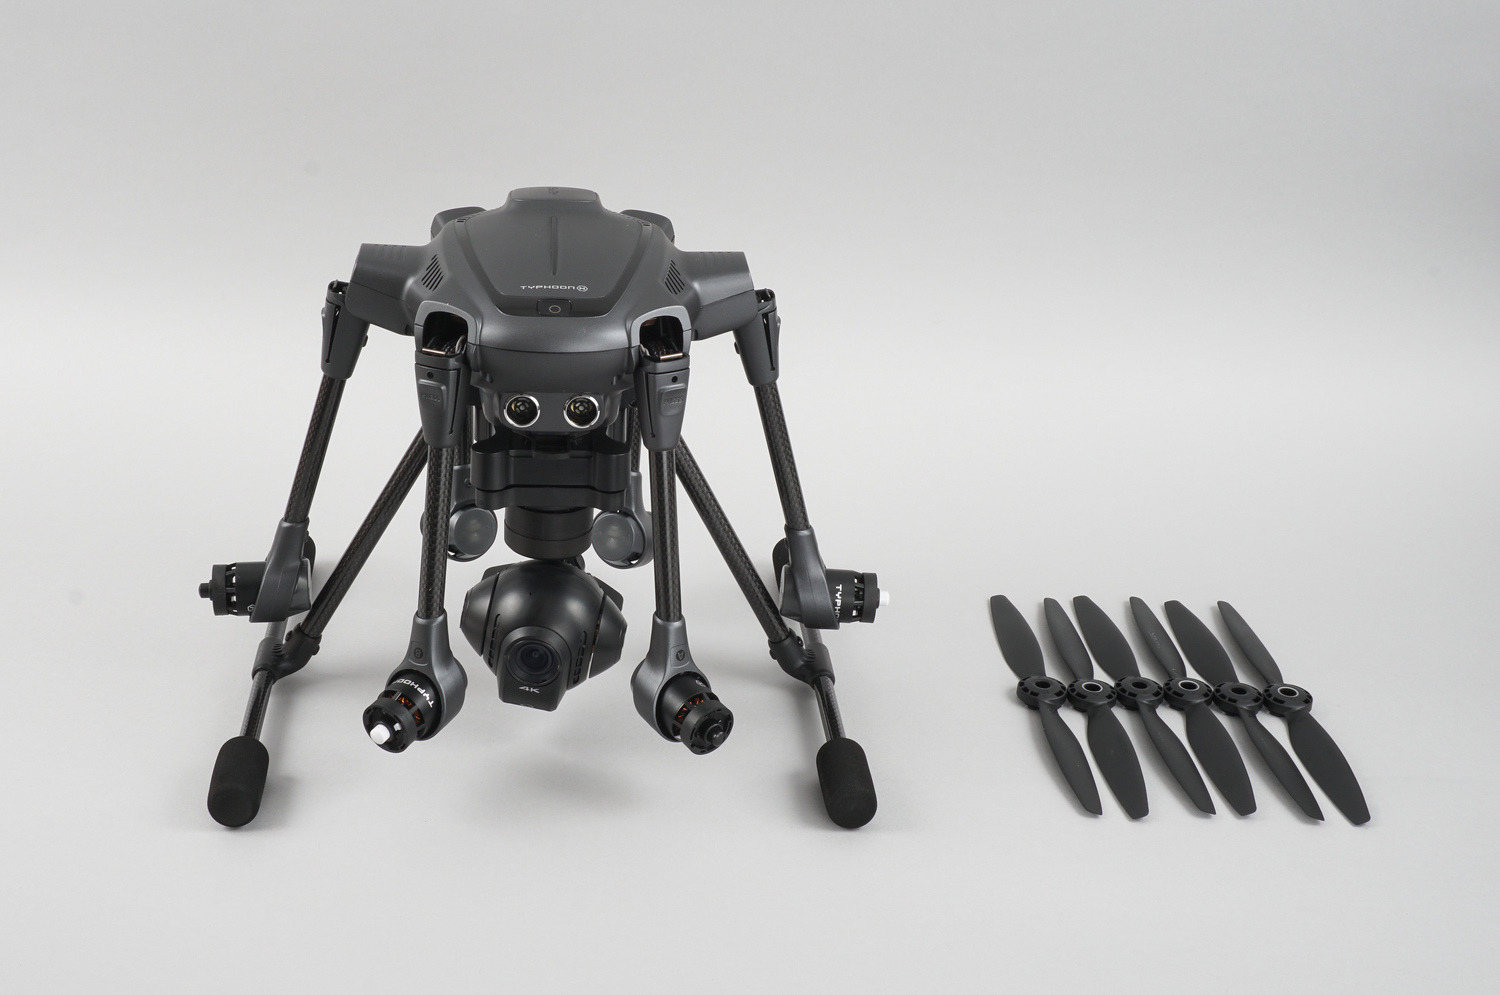 Typhoon H retractable arms and propellers